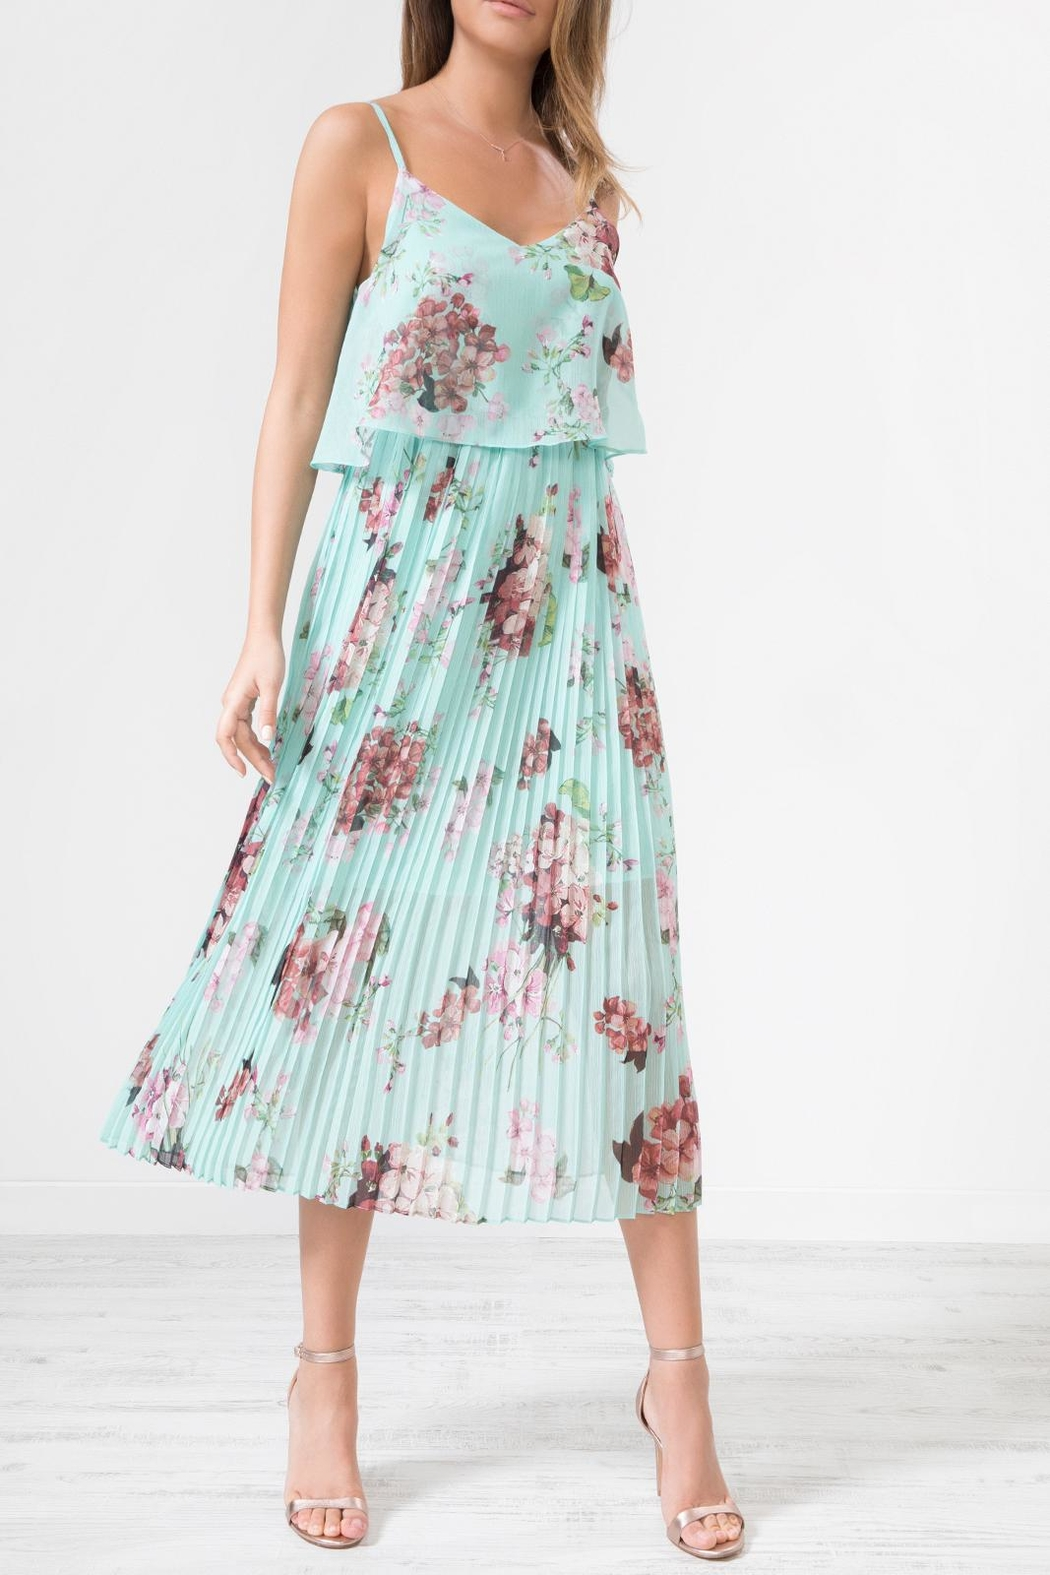 Urban Touch Blue Floral Dress - Front Full Image